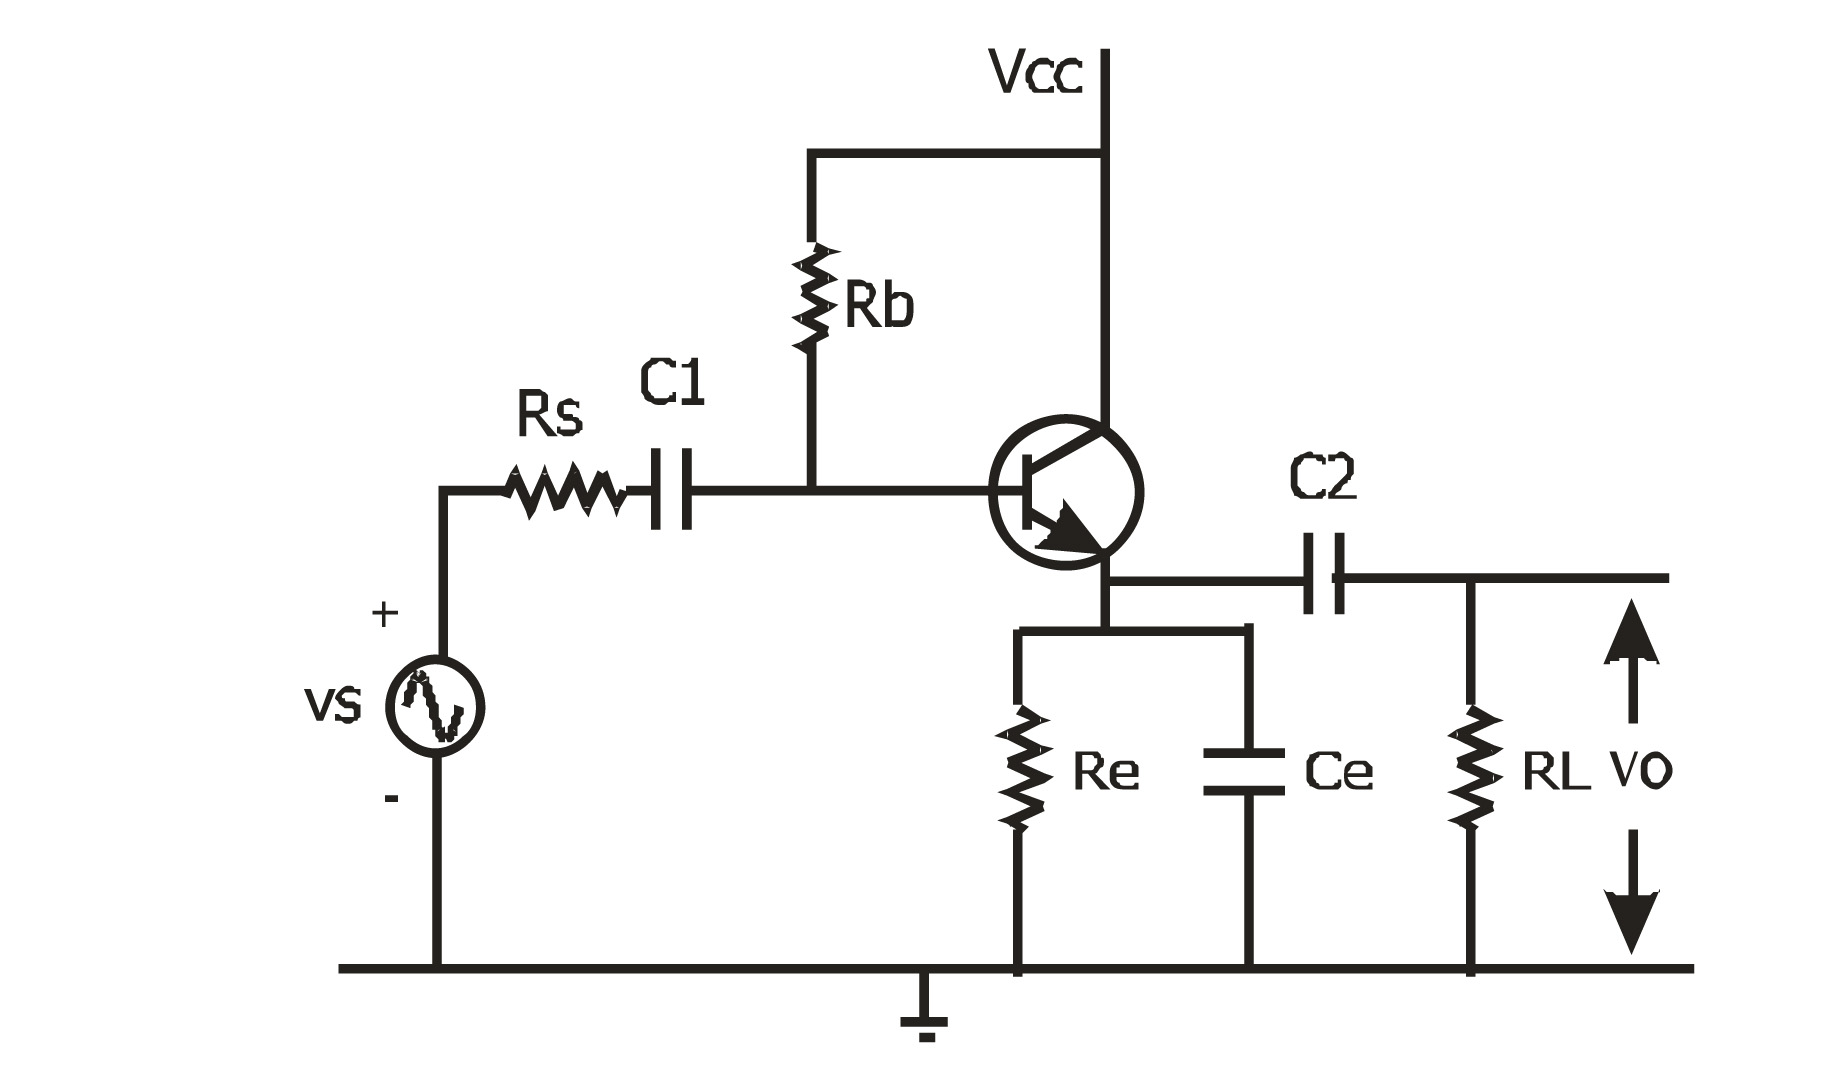 For the circuit of Figure the following parameters